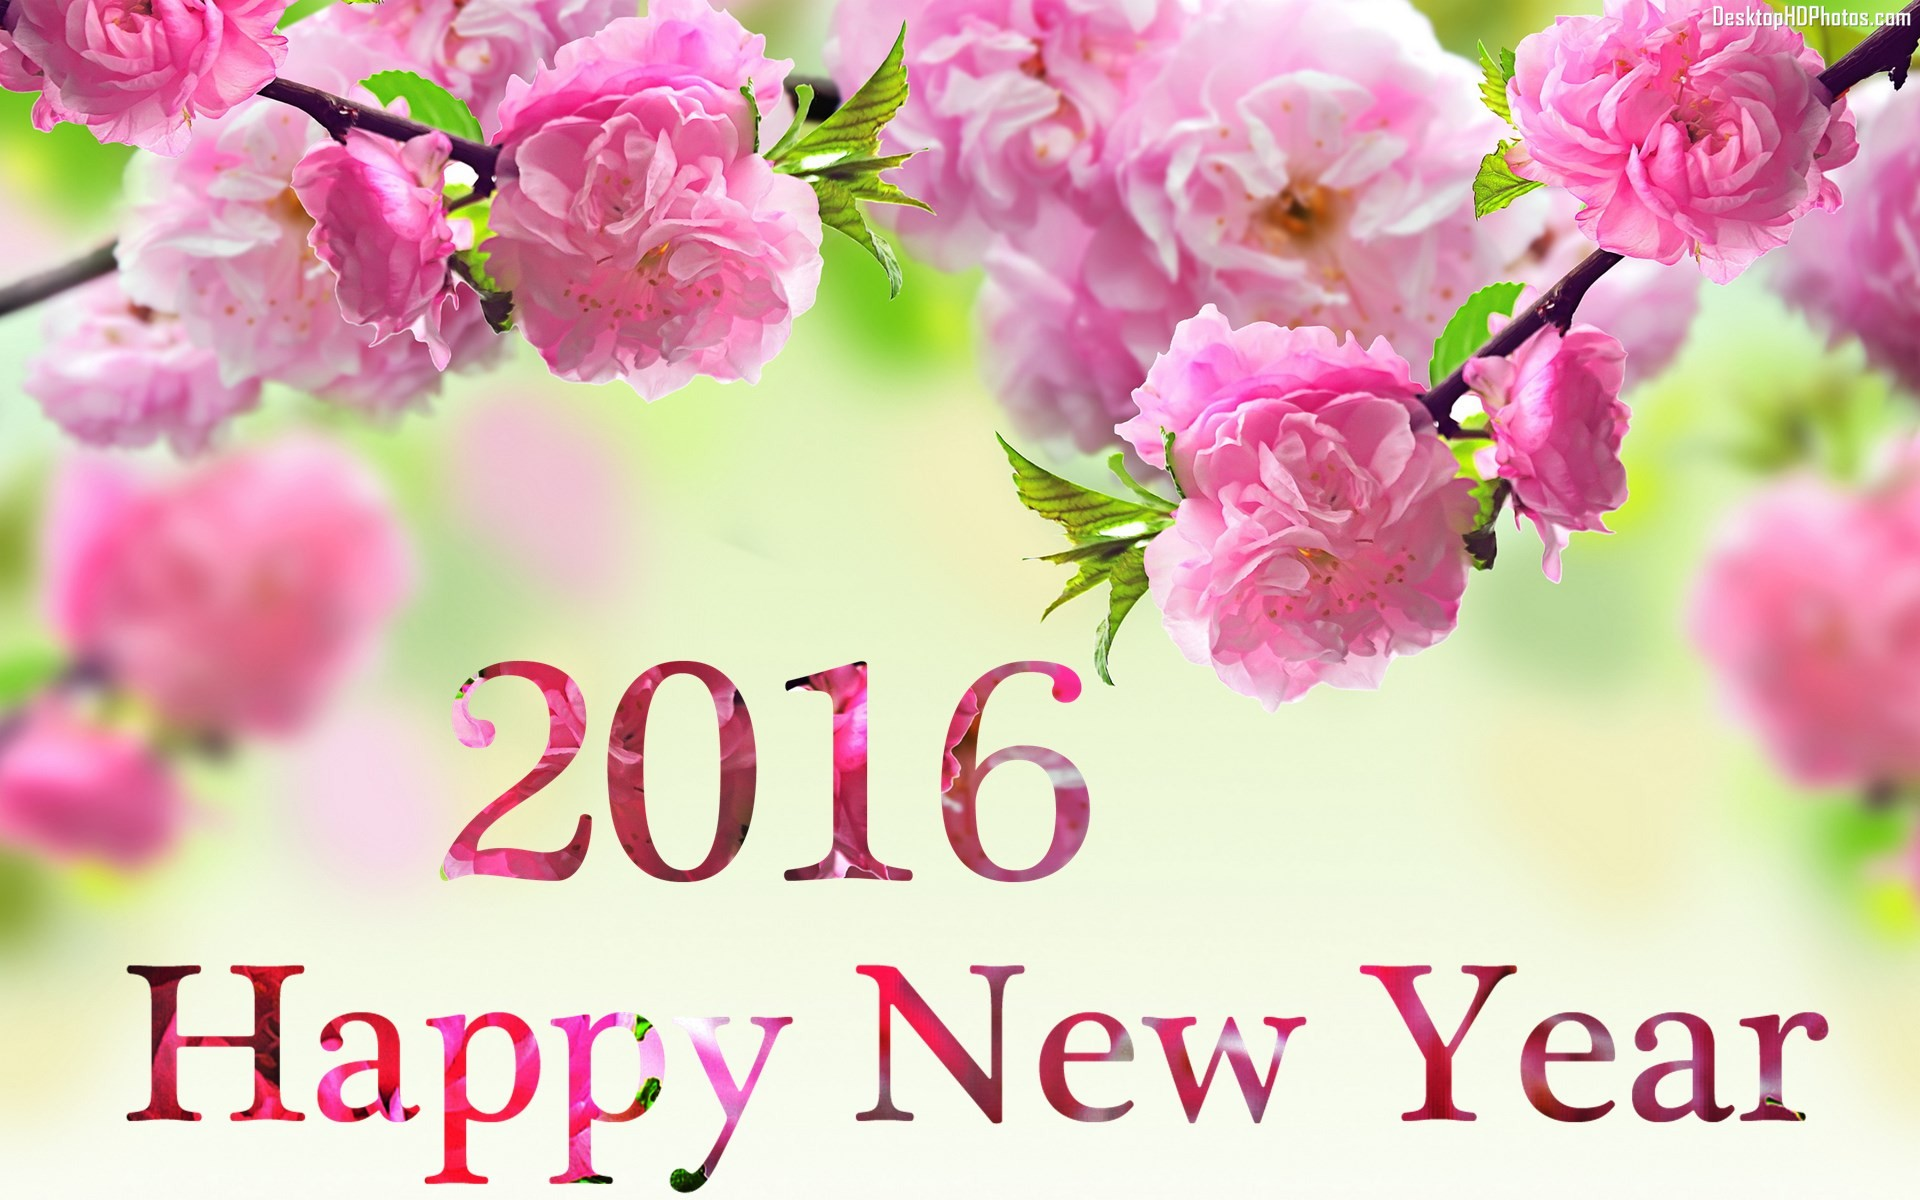 Events » Happy New Year 3d Wallpaper Photos - Happy New Year 2017 3d , HD Wallpaper & Backgrounds